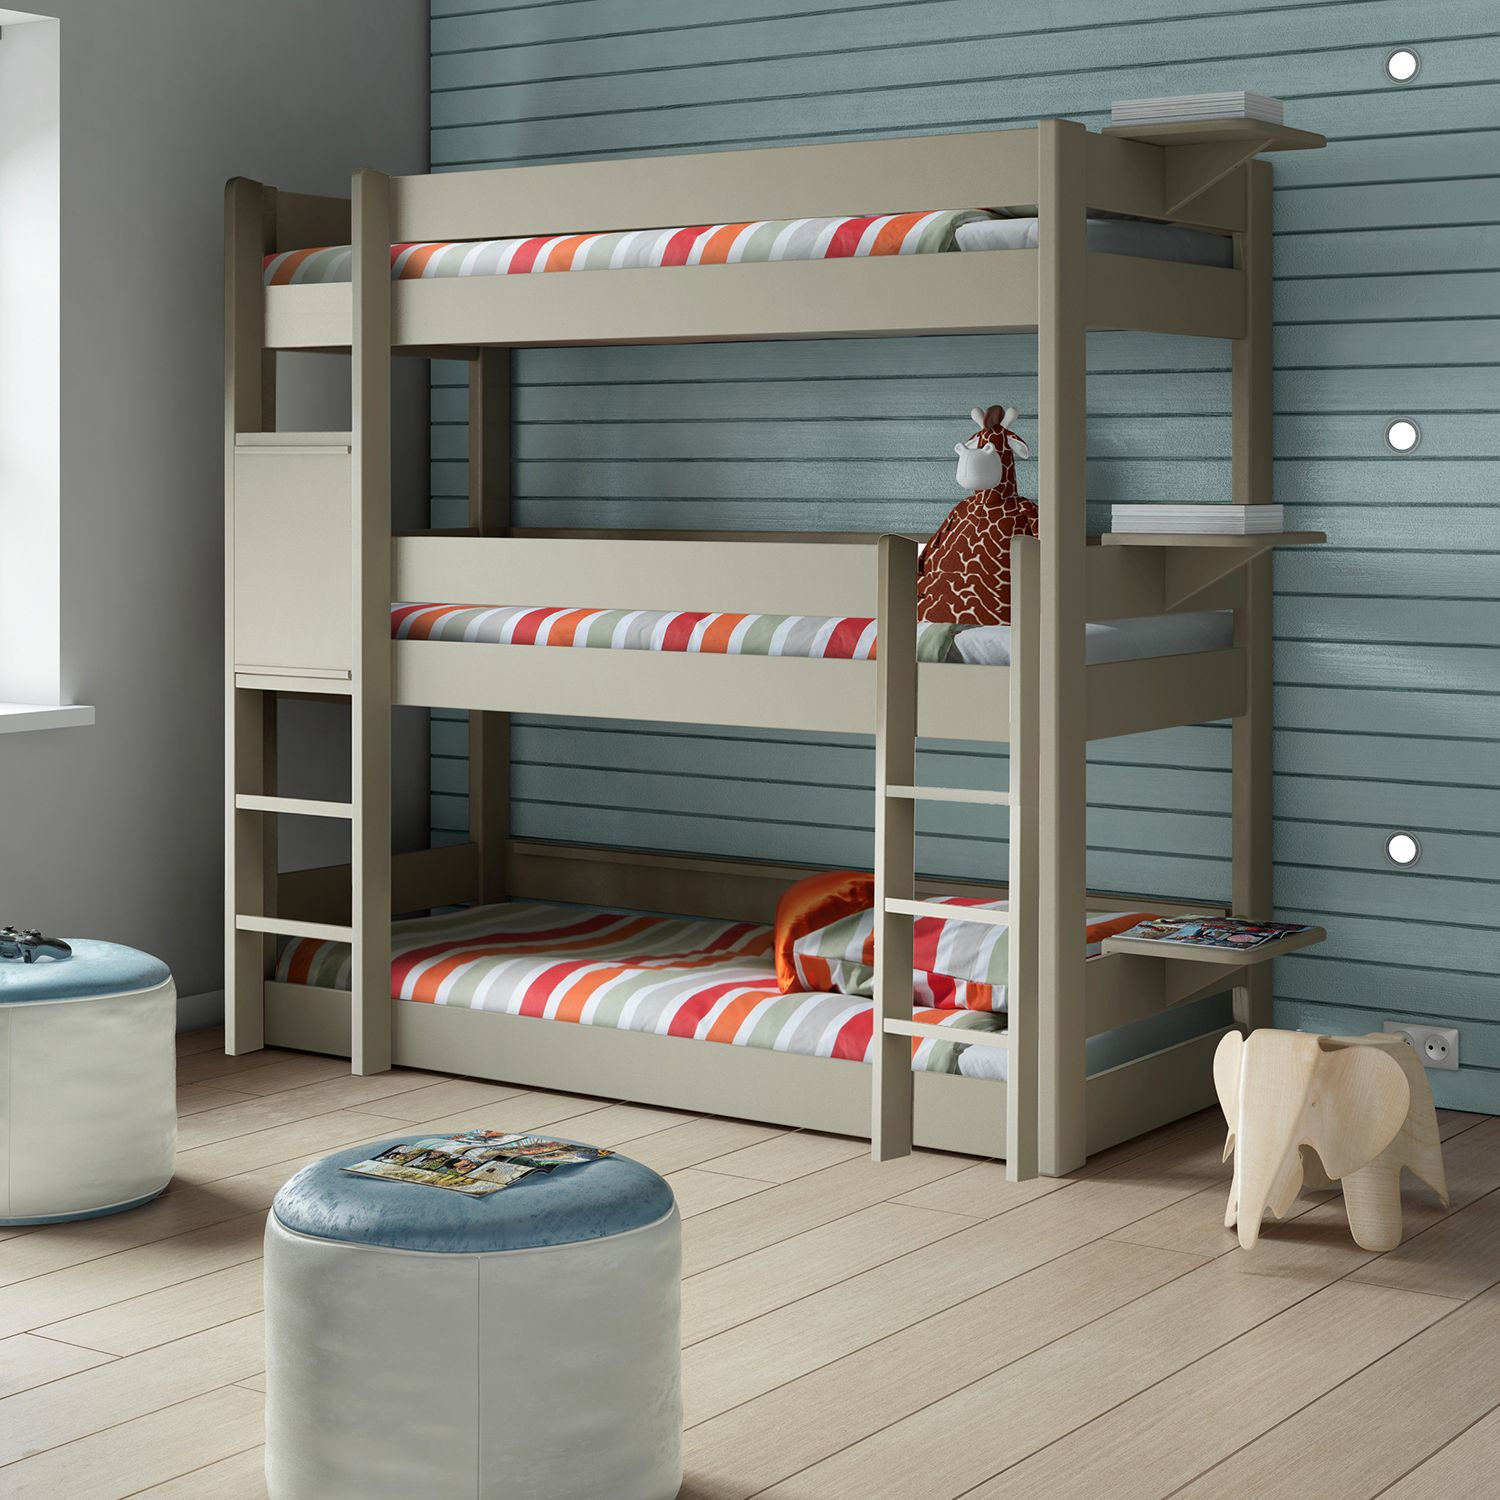 This Mathy By Bols triple bunk bed is perfect for large